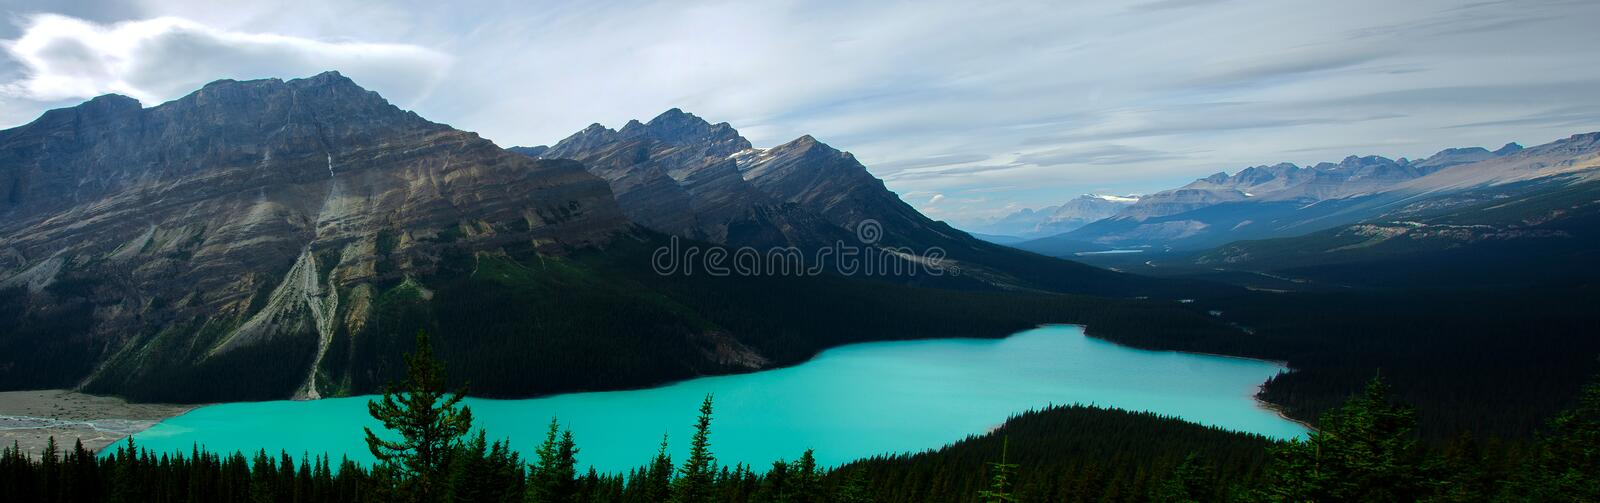 Panoramatic sikt av Peyto sjön i Rocky Mountains arkivfoto